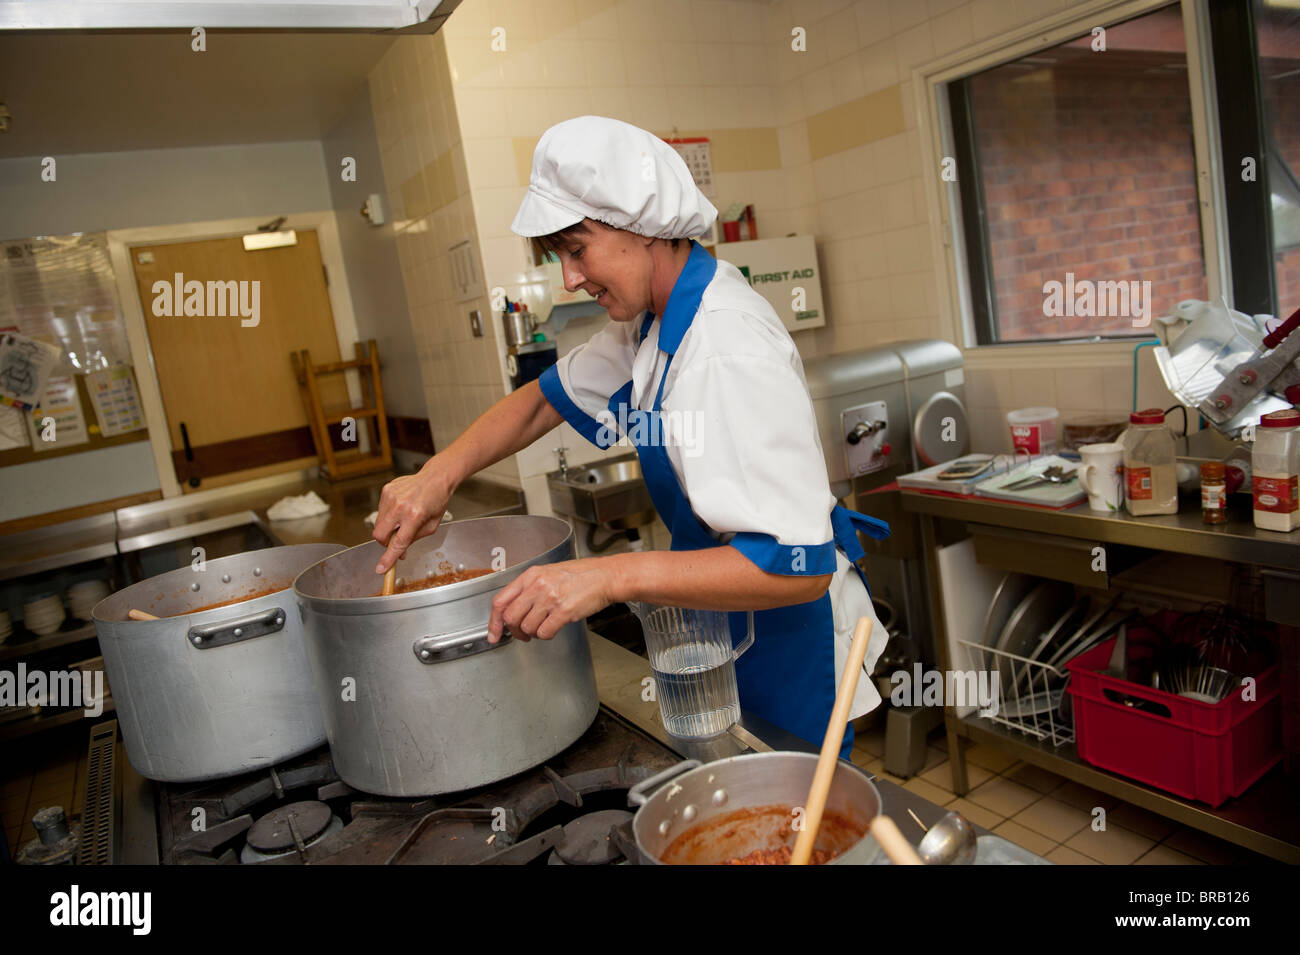 School cook preparing dinner in a primary school kitchen, UK - Stock Image